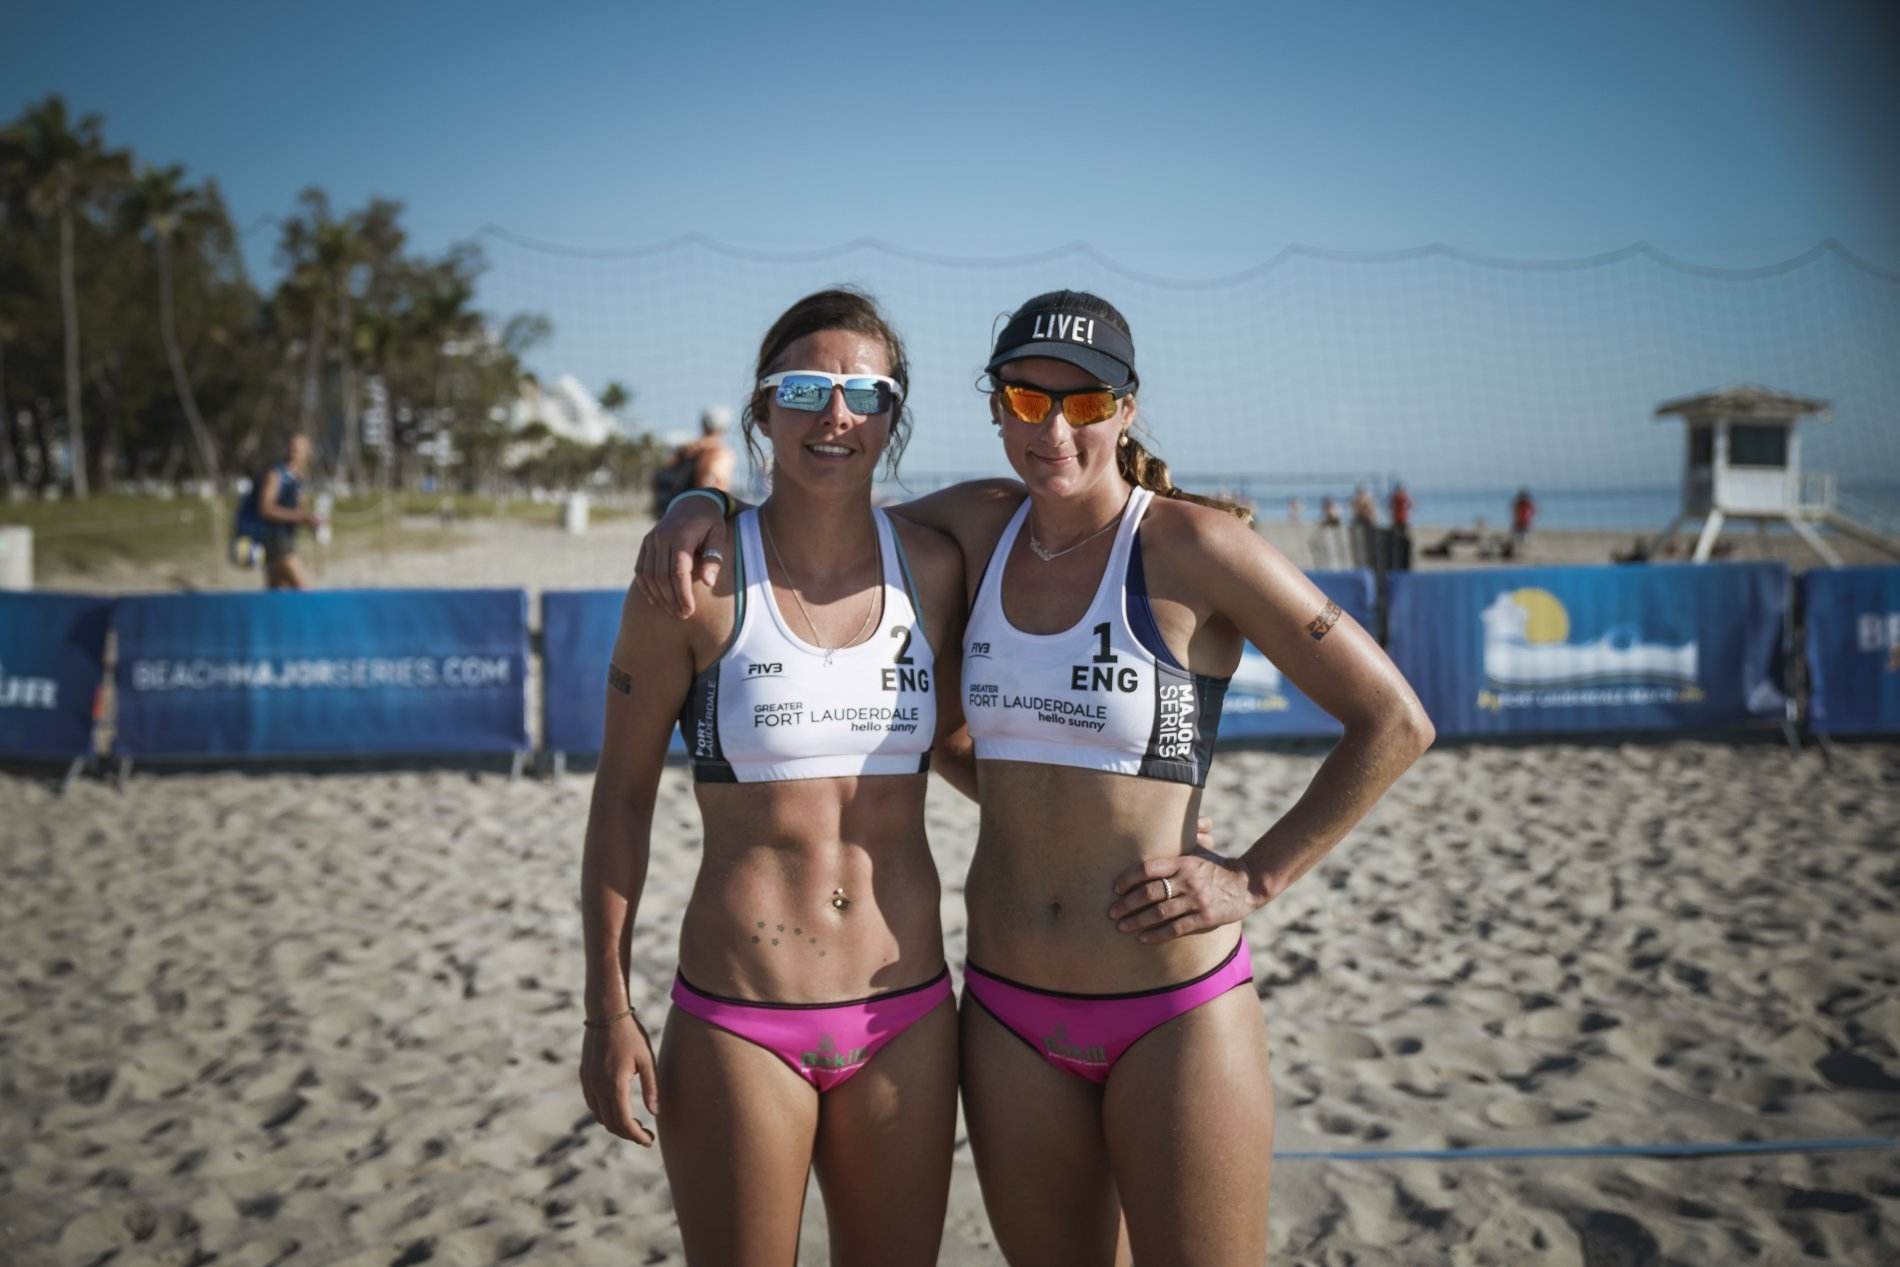 Jessica (left) and Victoria are on a mission to win a medal and get England to love beach volleyball